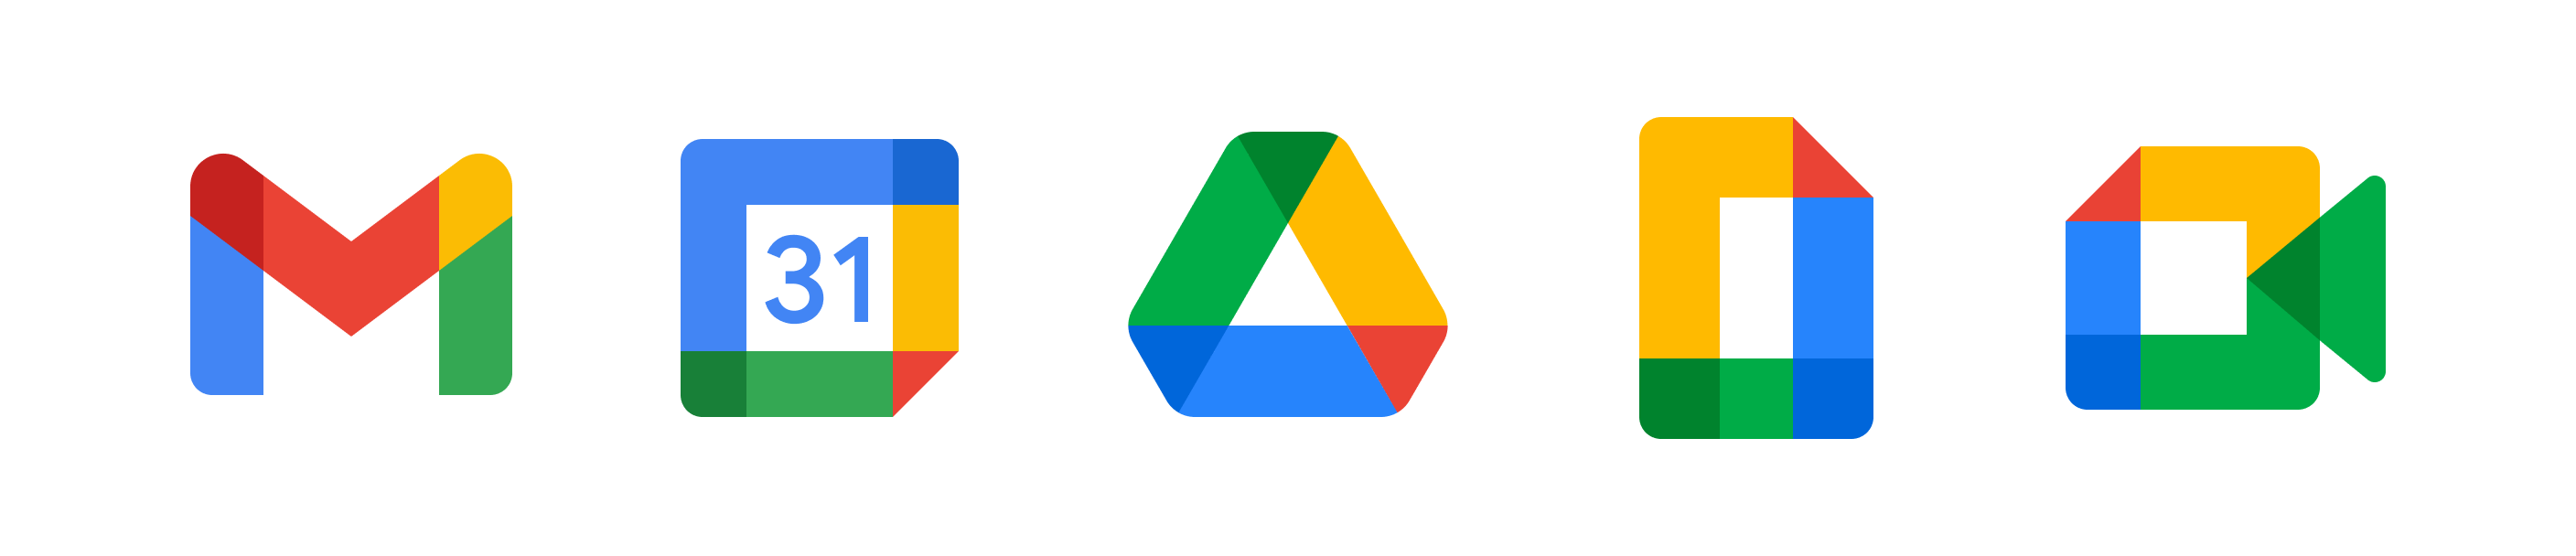 Google Workspace applications